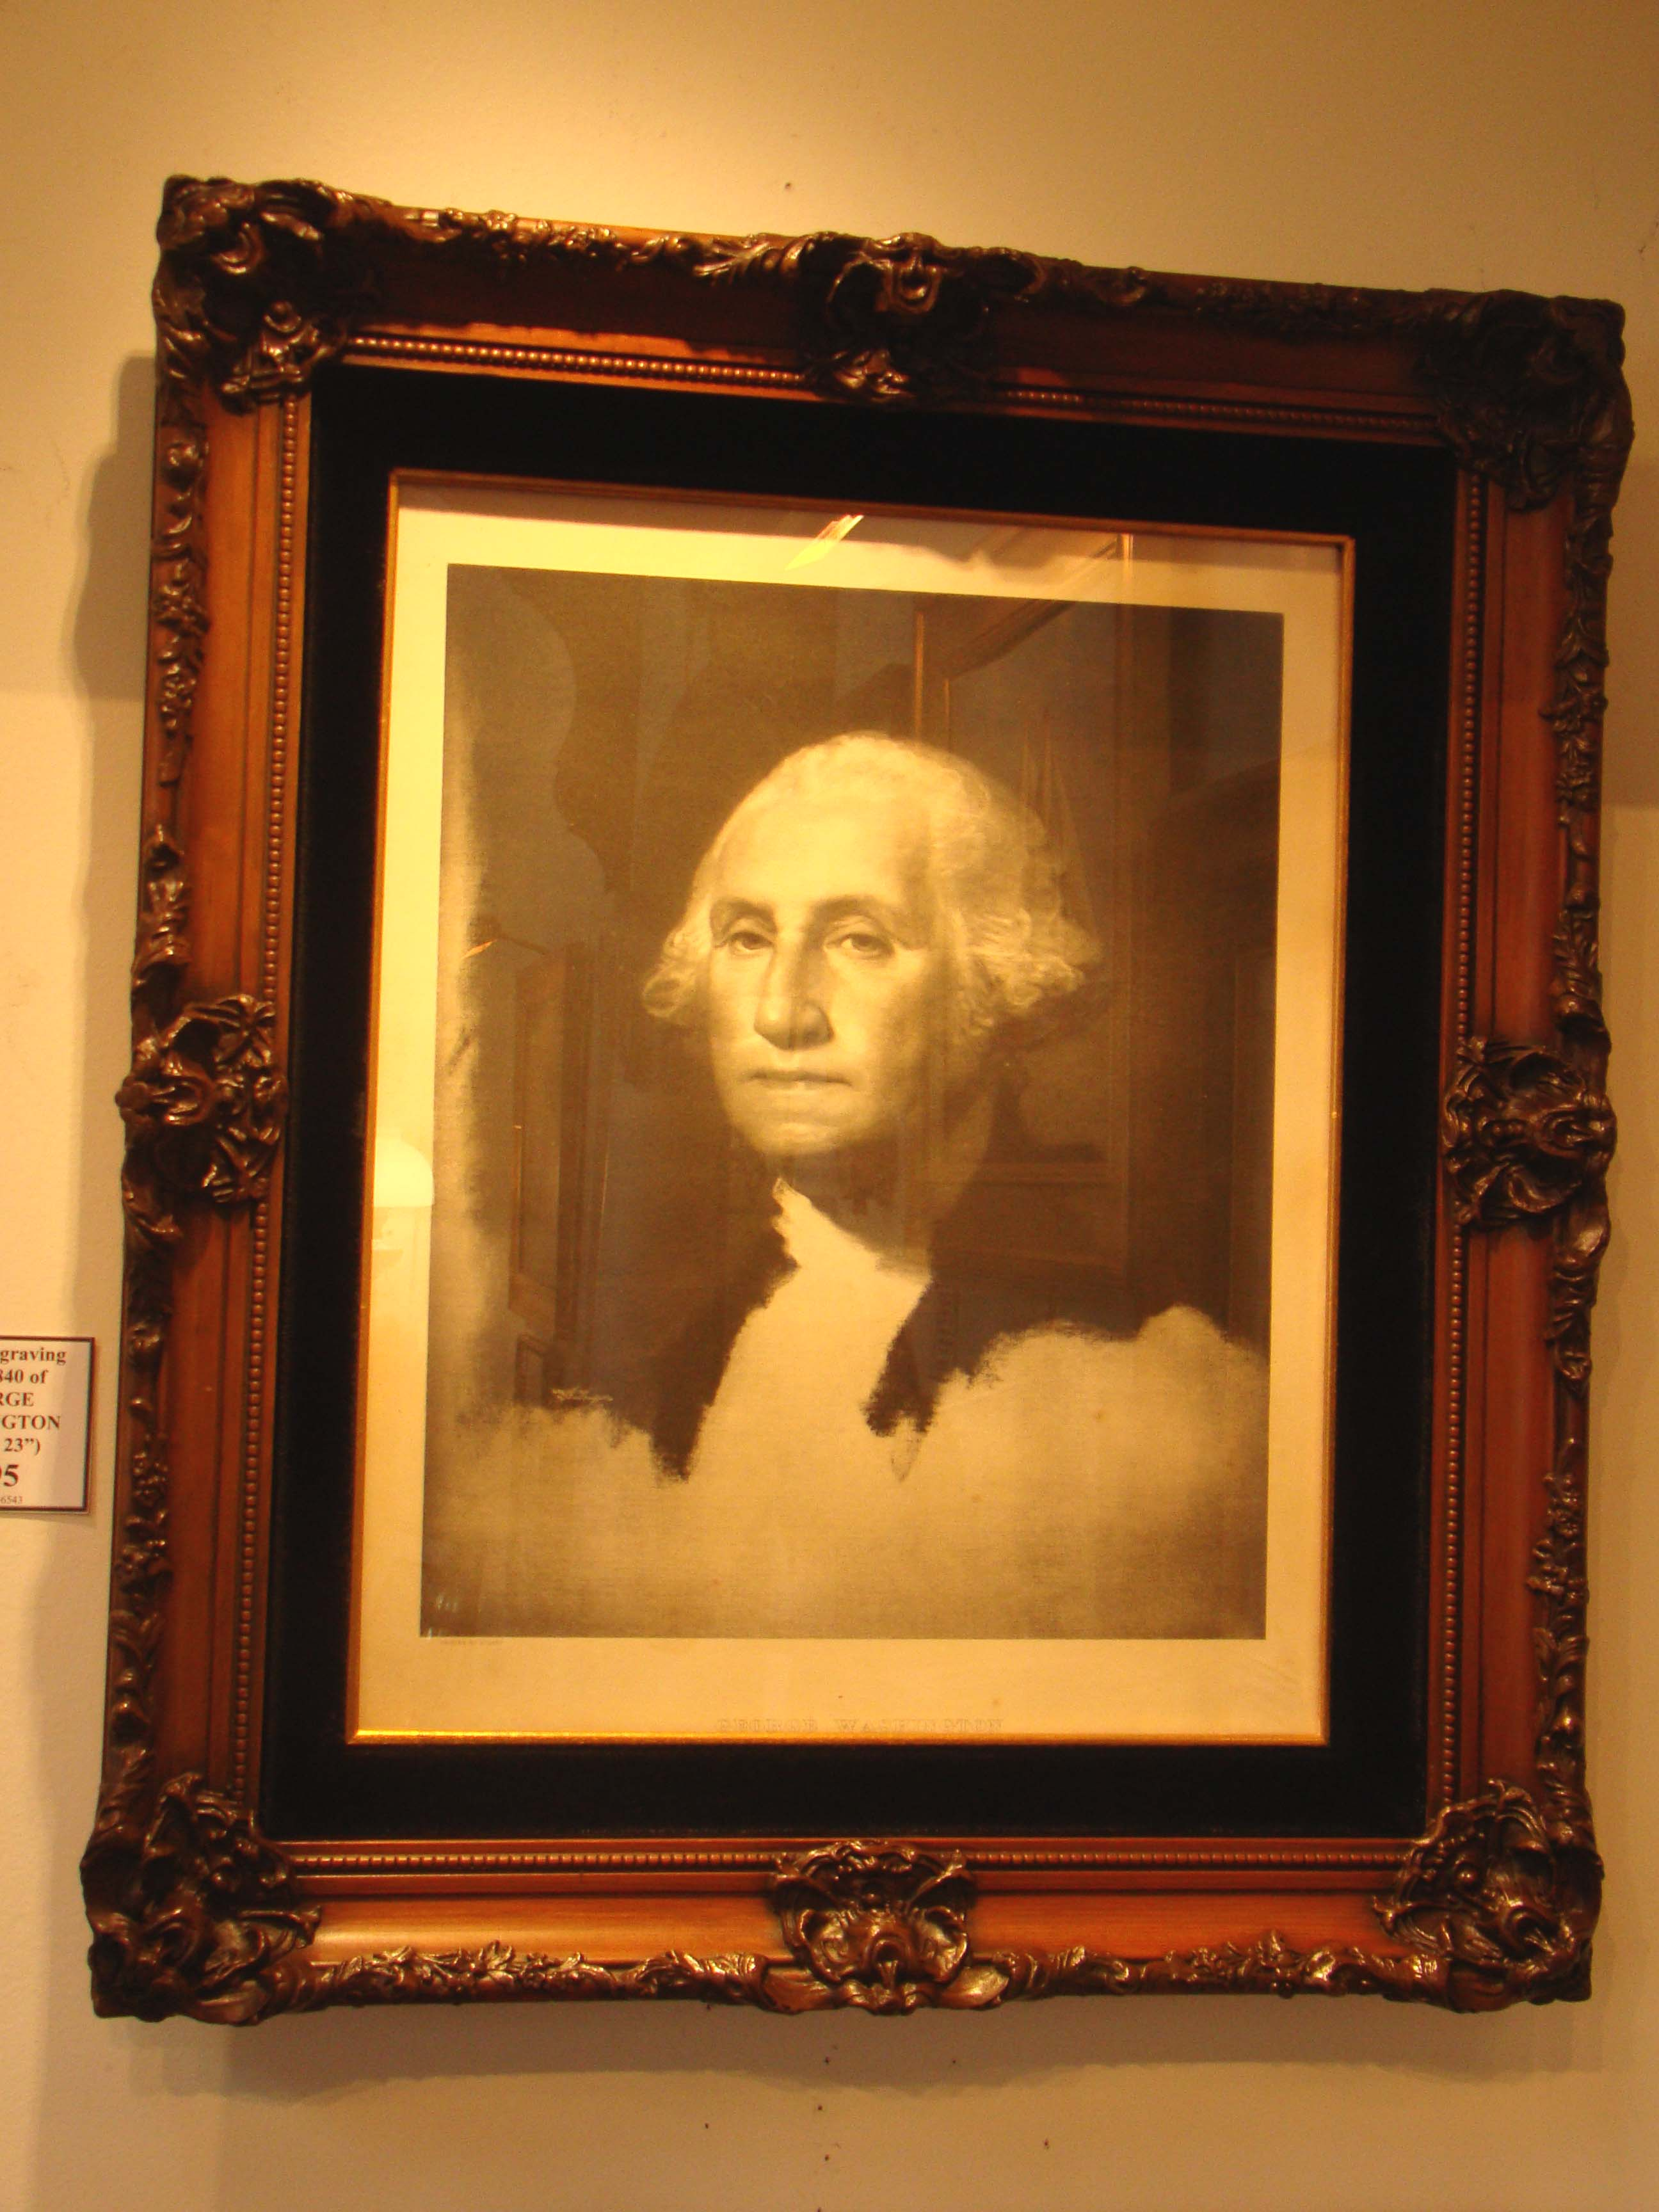 click to view detailed description of A fine print of George Washington done in 1901